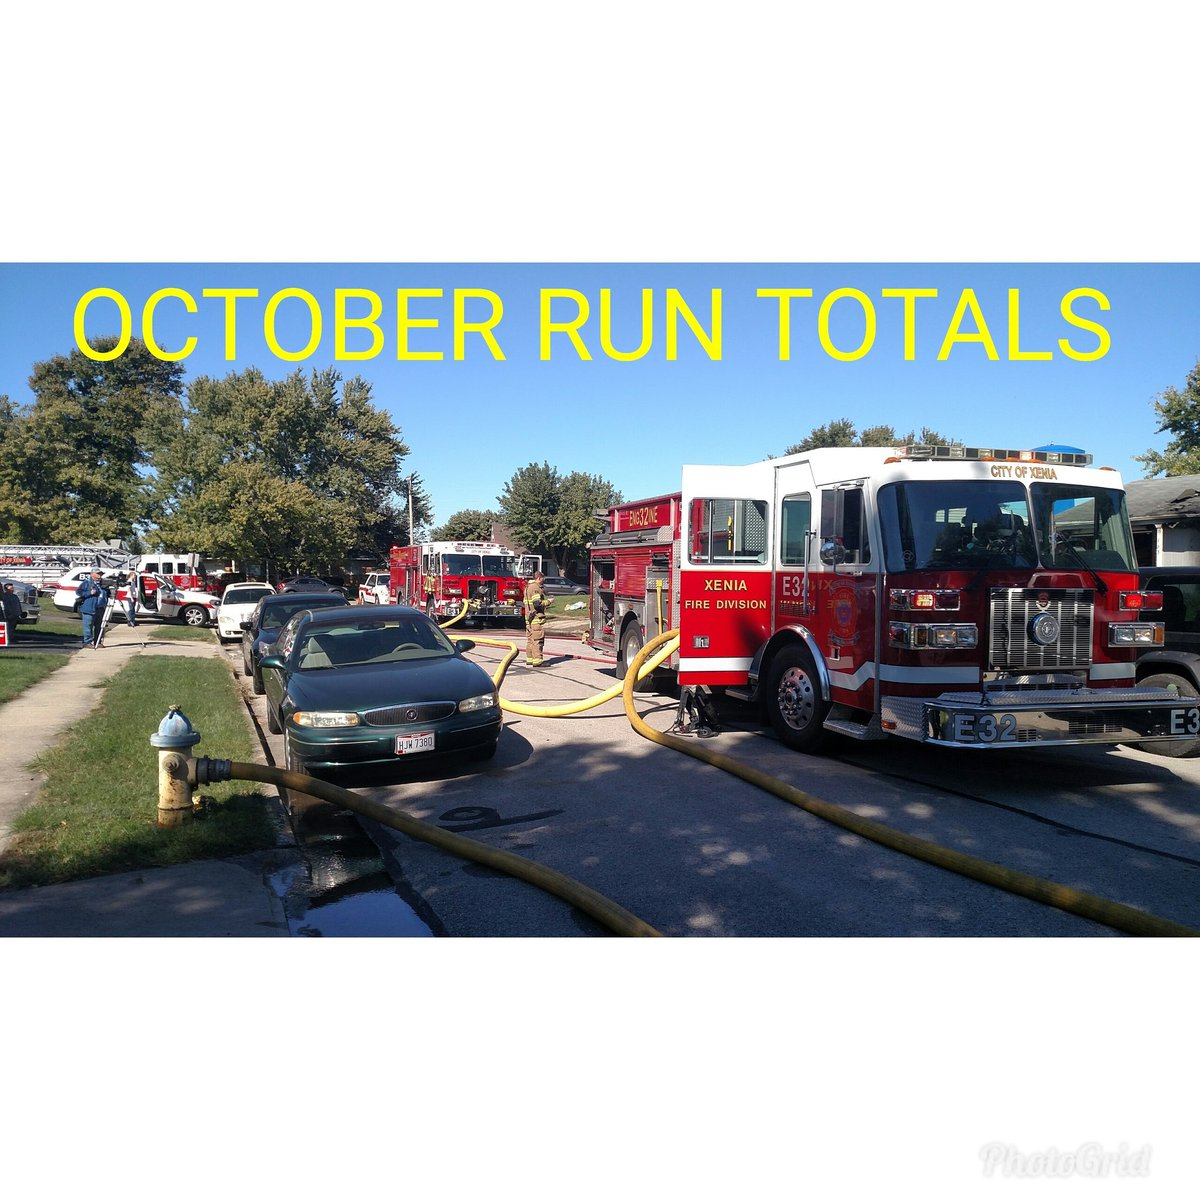 Xenia Fire Division on Twitter: